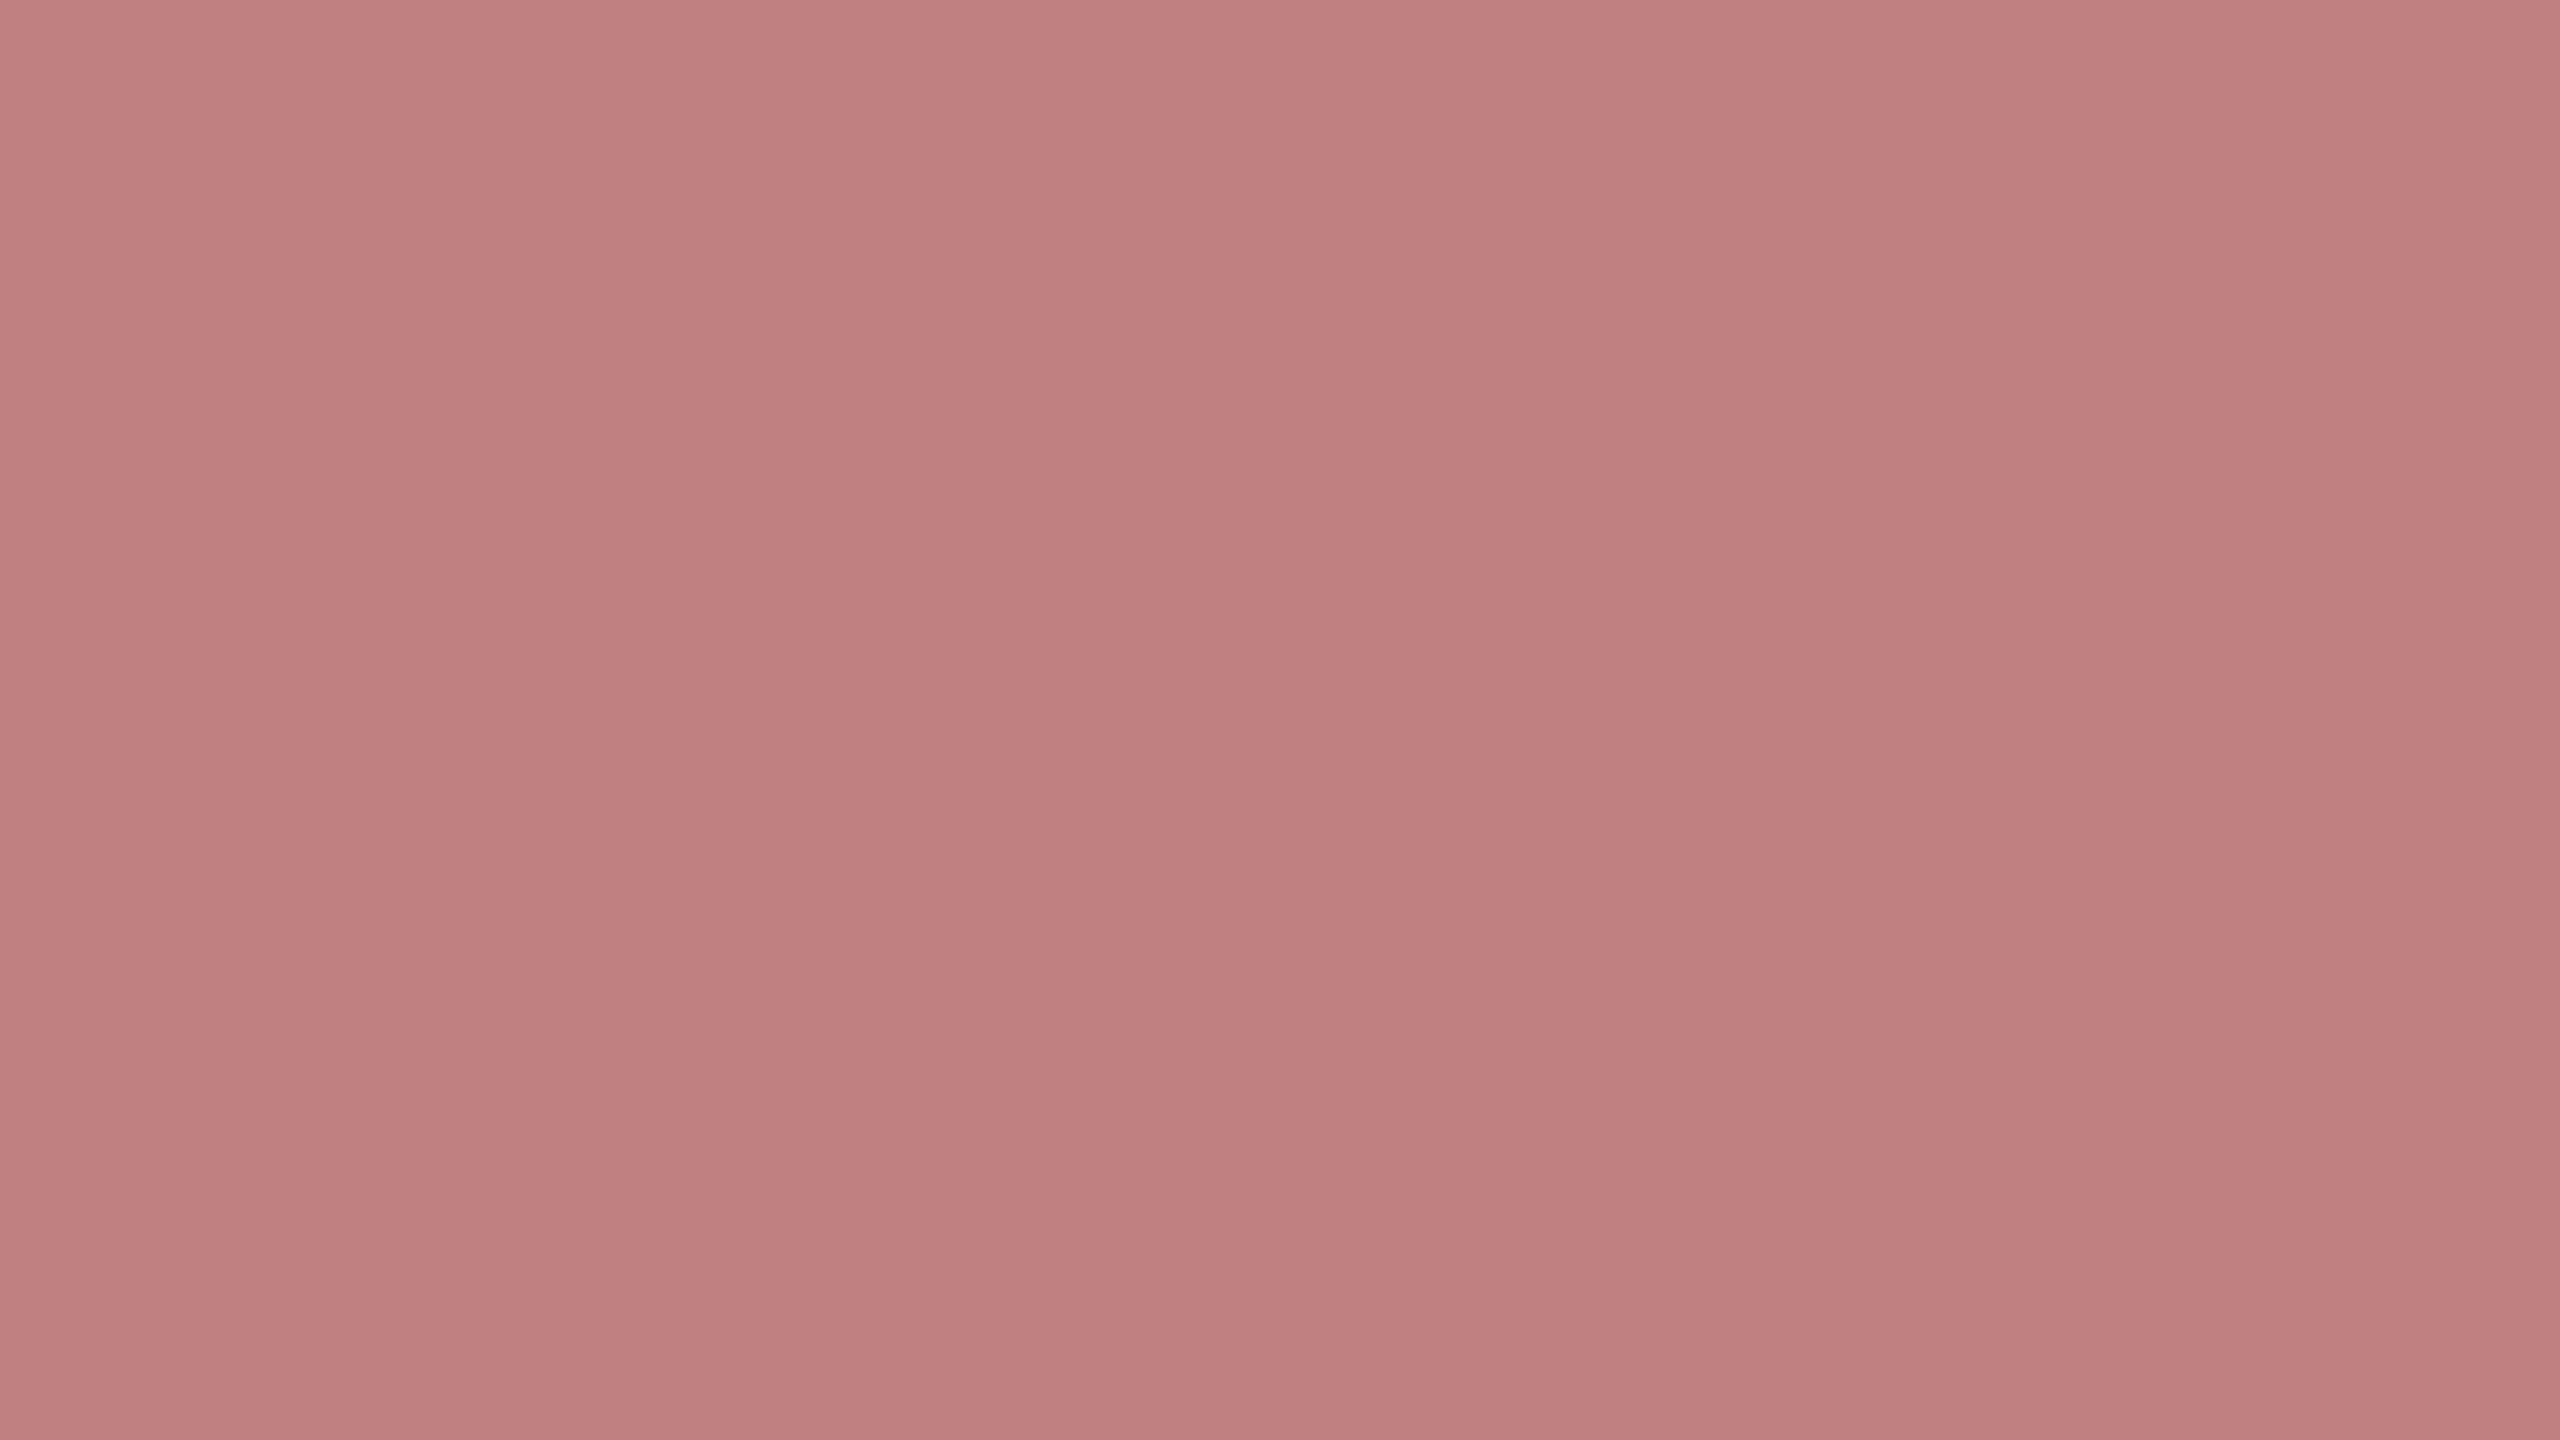 2560x1440 Old Rose Solid Color Background